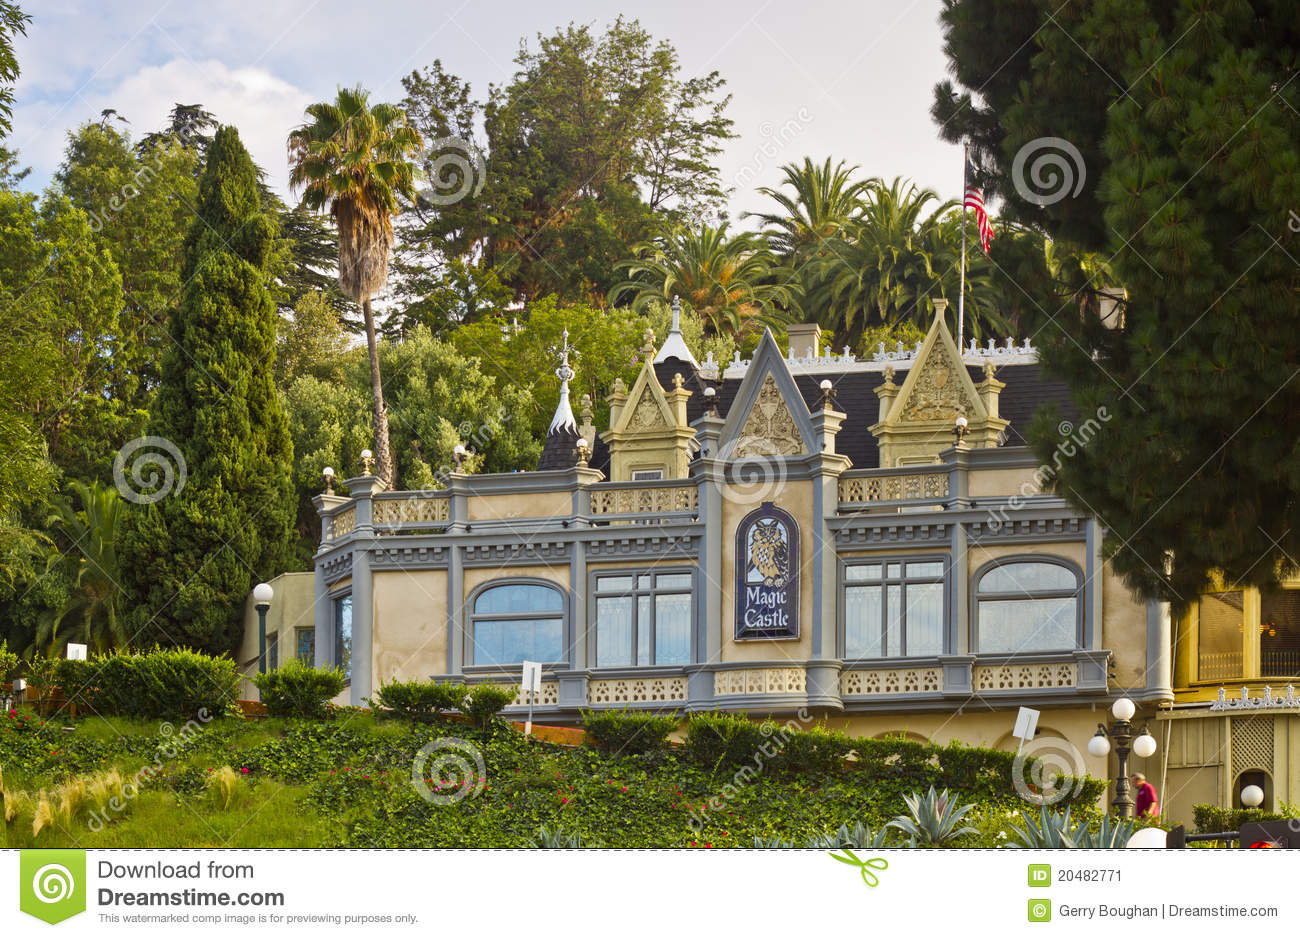 Das magische Schloss in Hollywood, Kalifornien